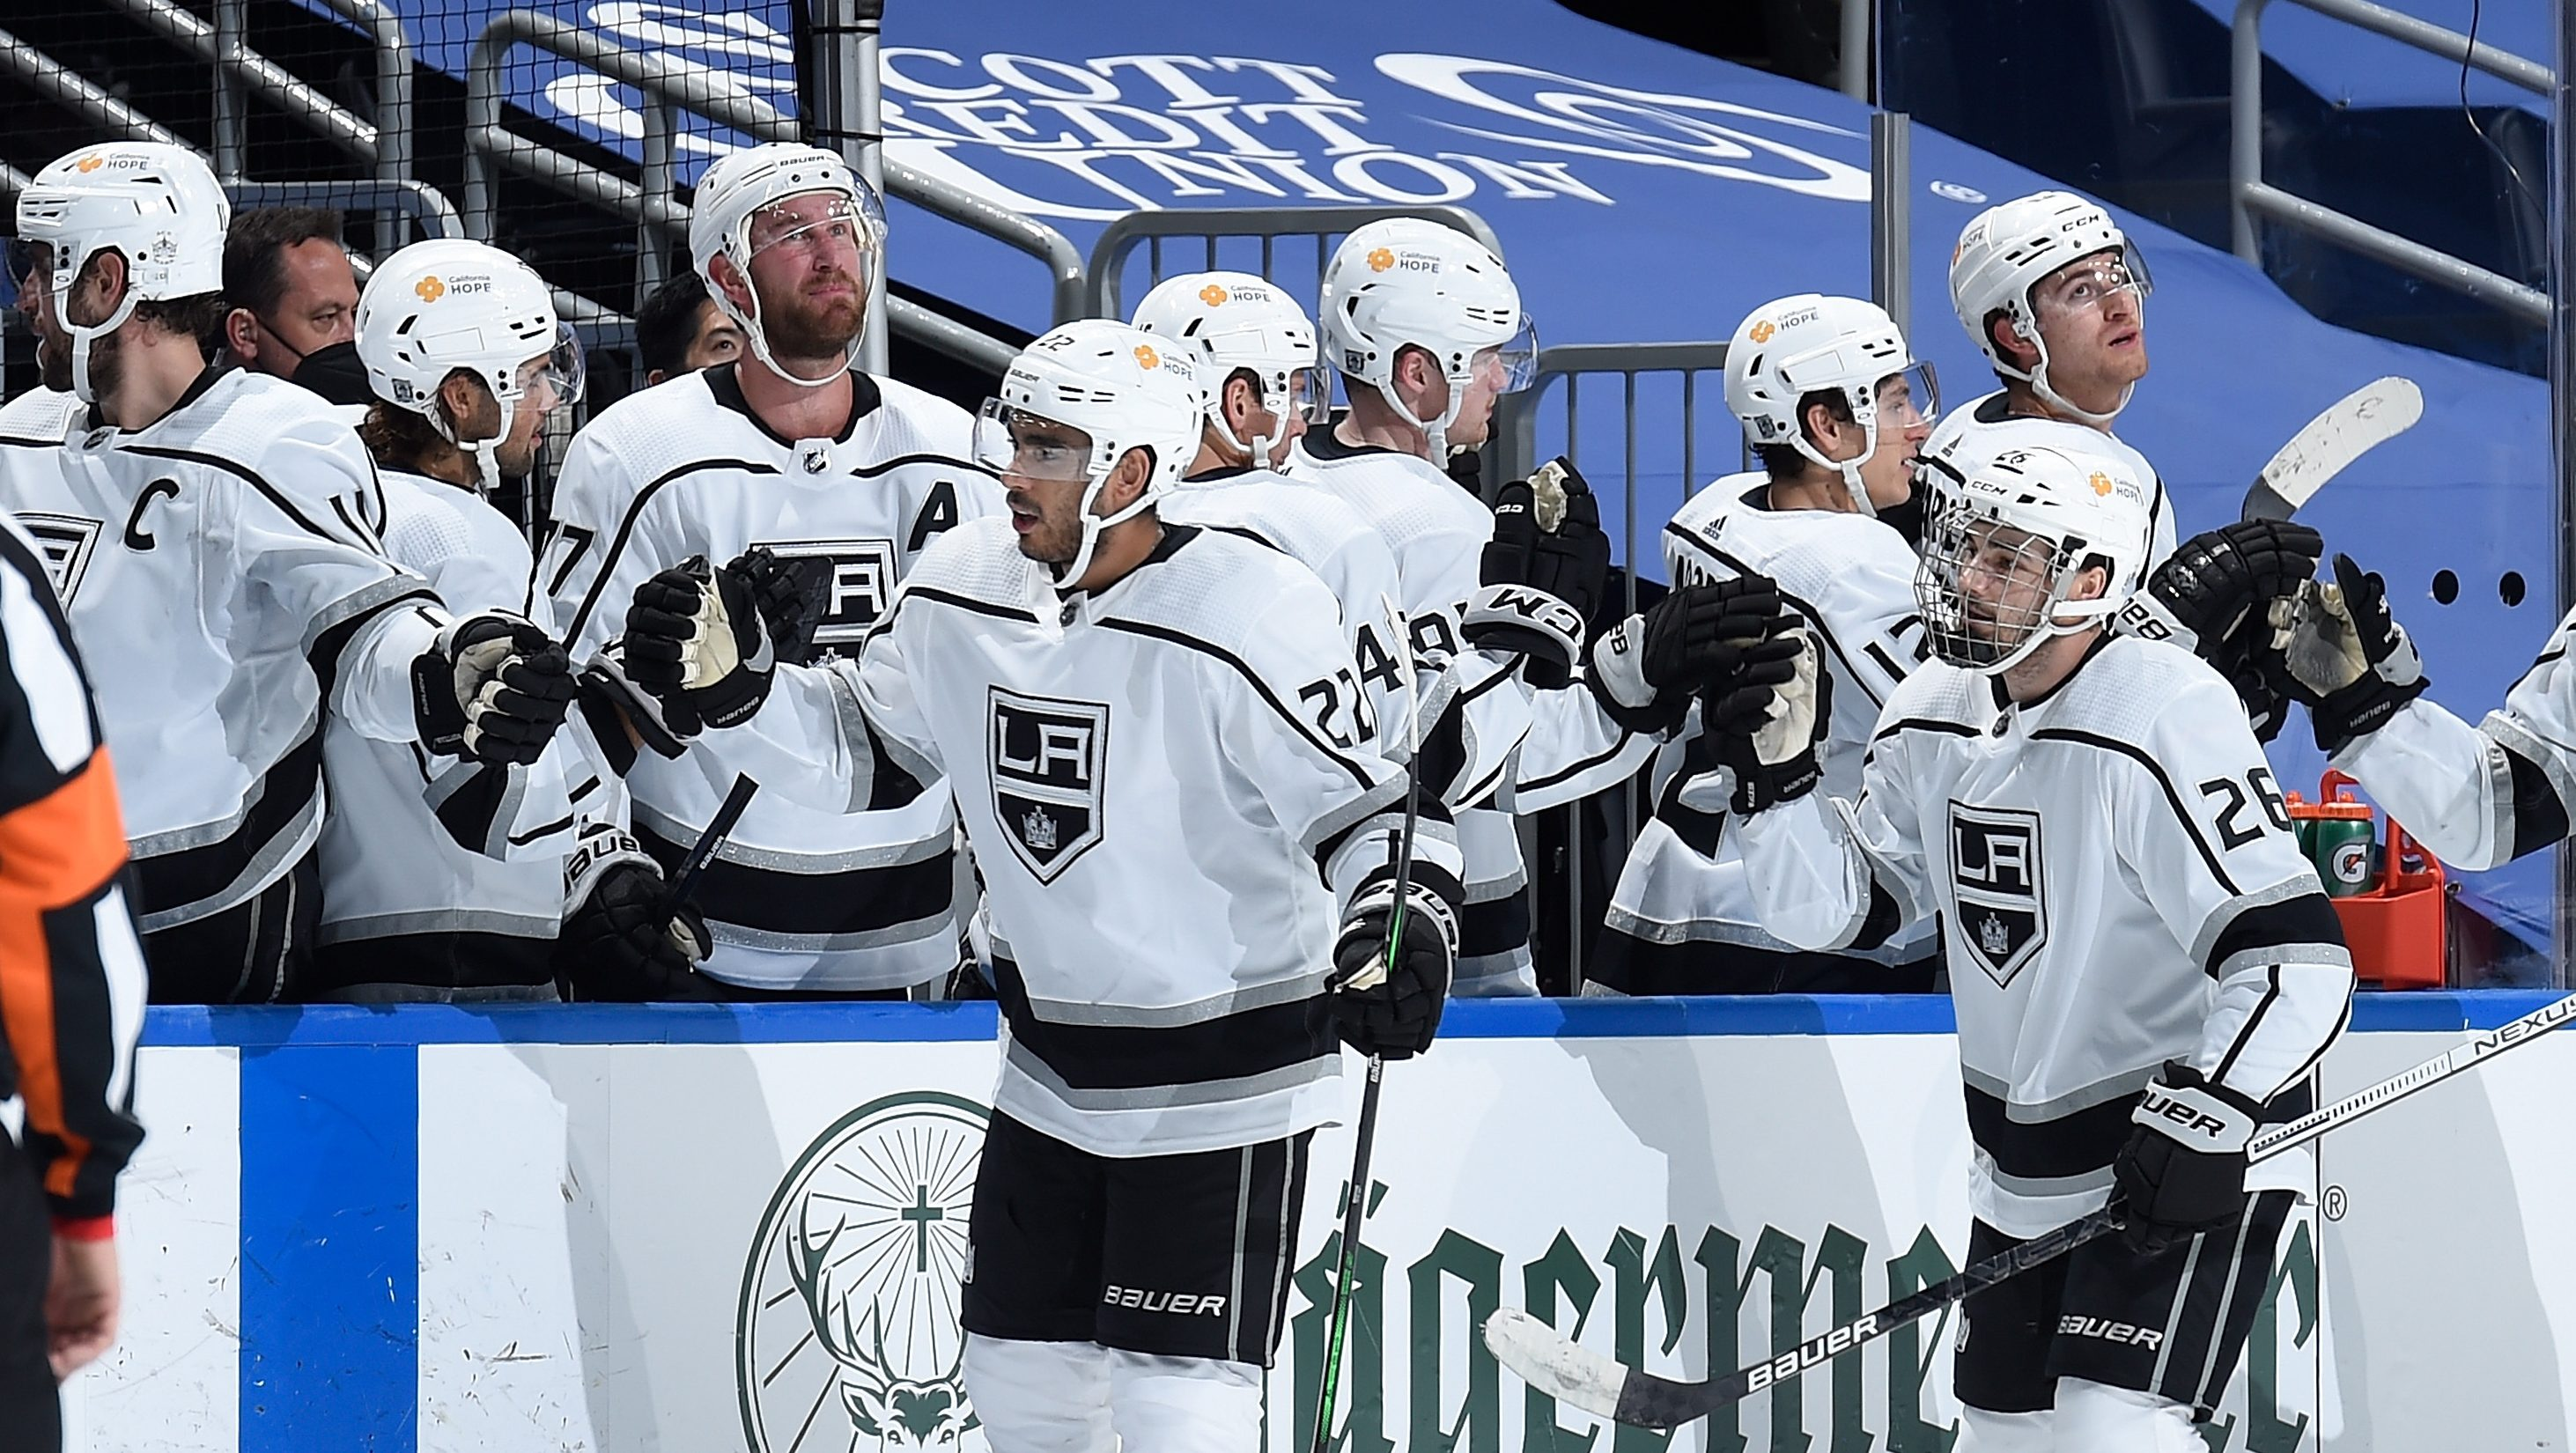 Kings winning streak reaches 6 with another impressive win over Blues